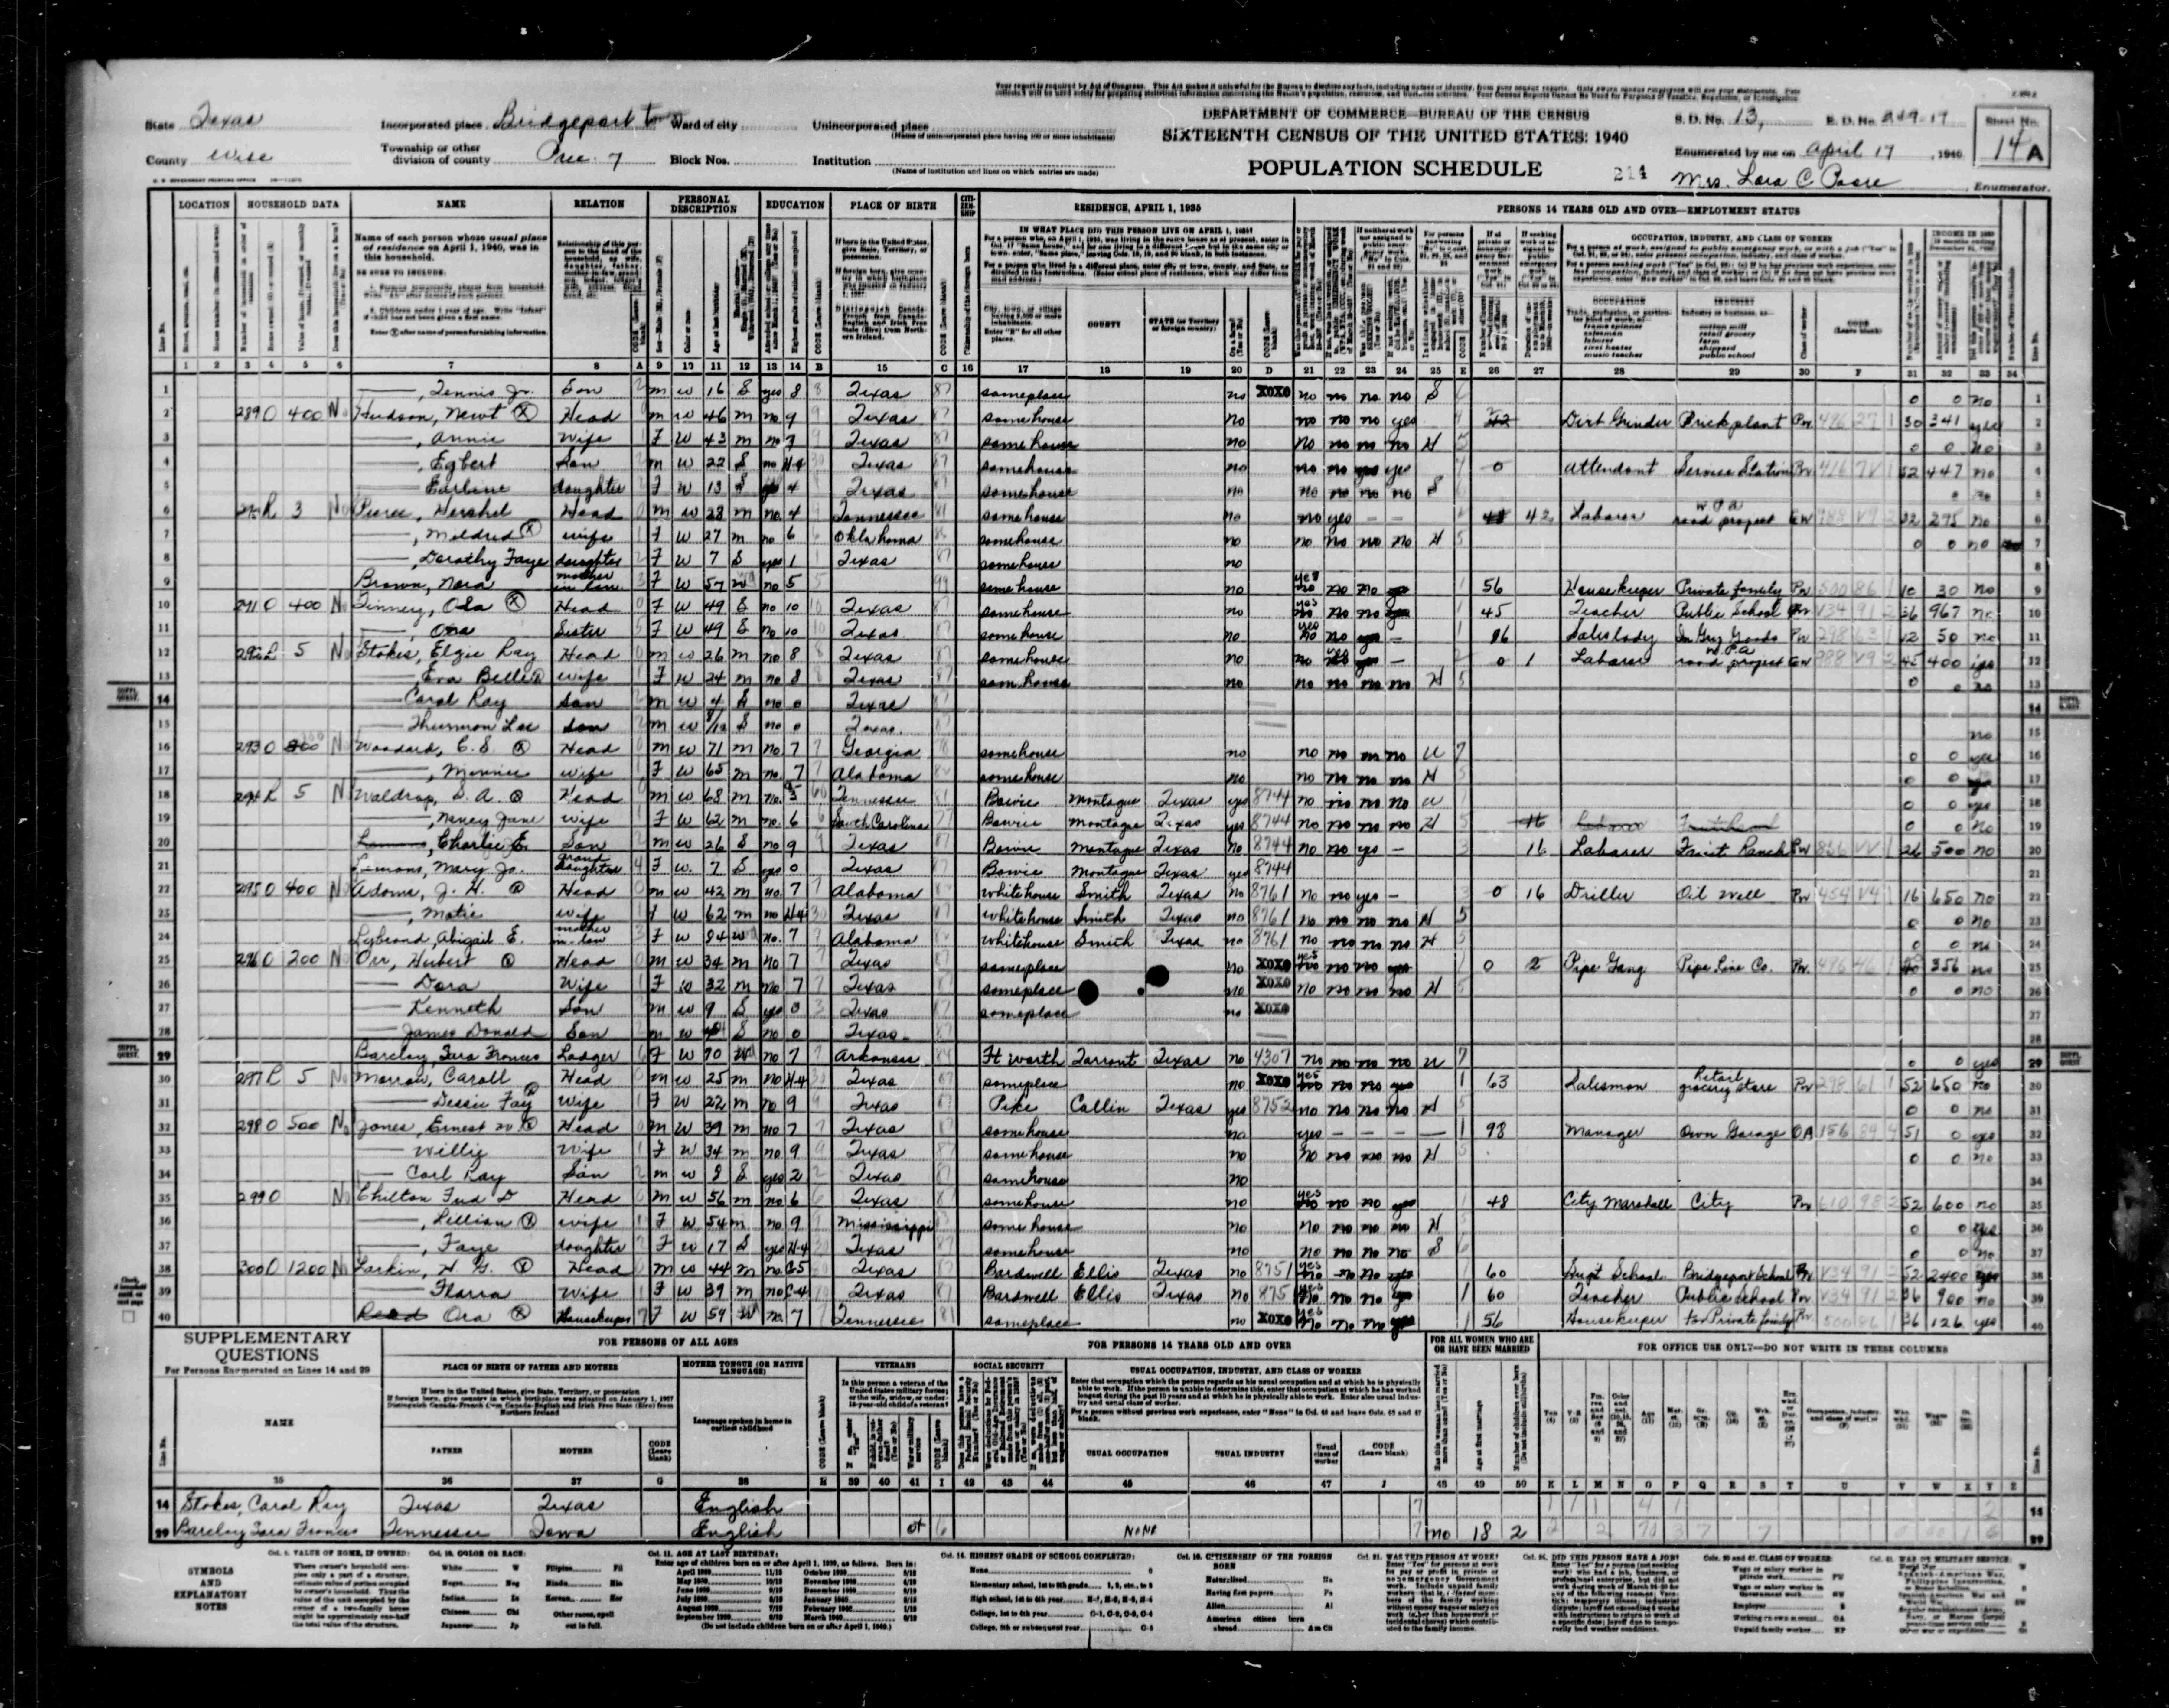 wise county tx census index of all s a b 17 14a 22 adams j h head 42 bridgeport halsell st